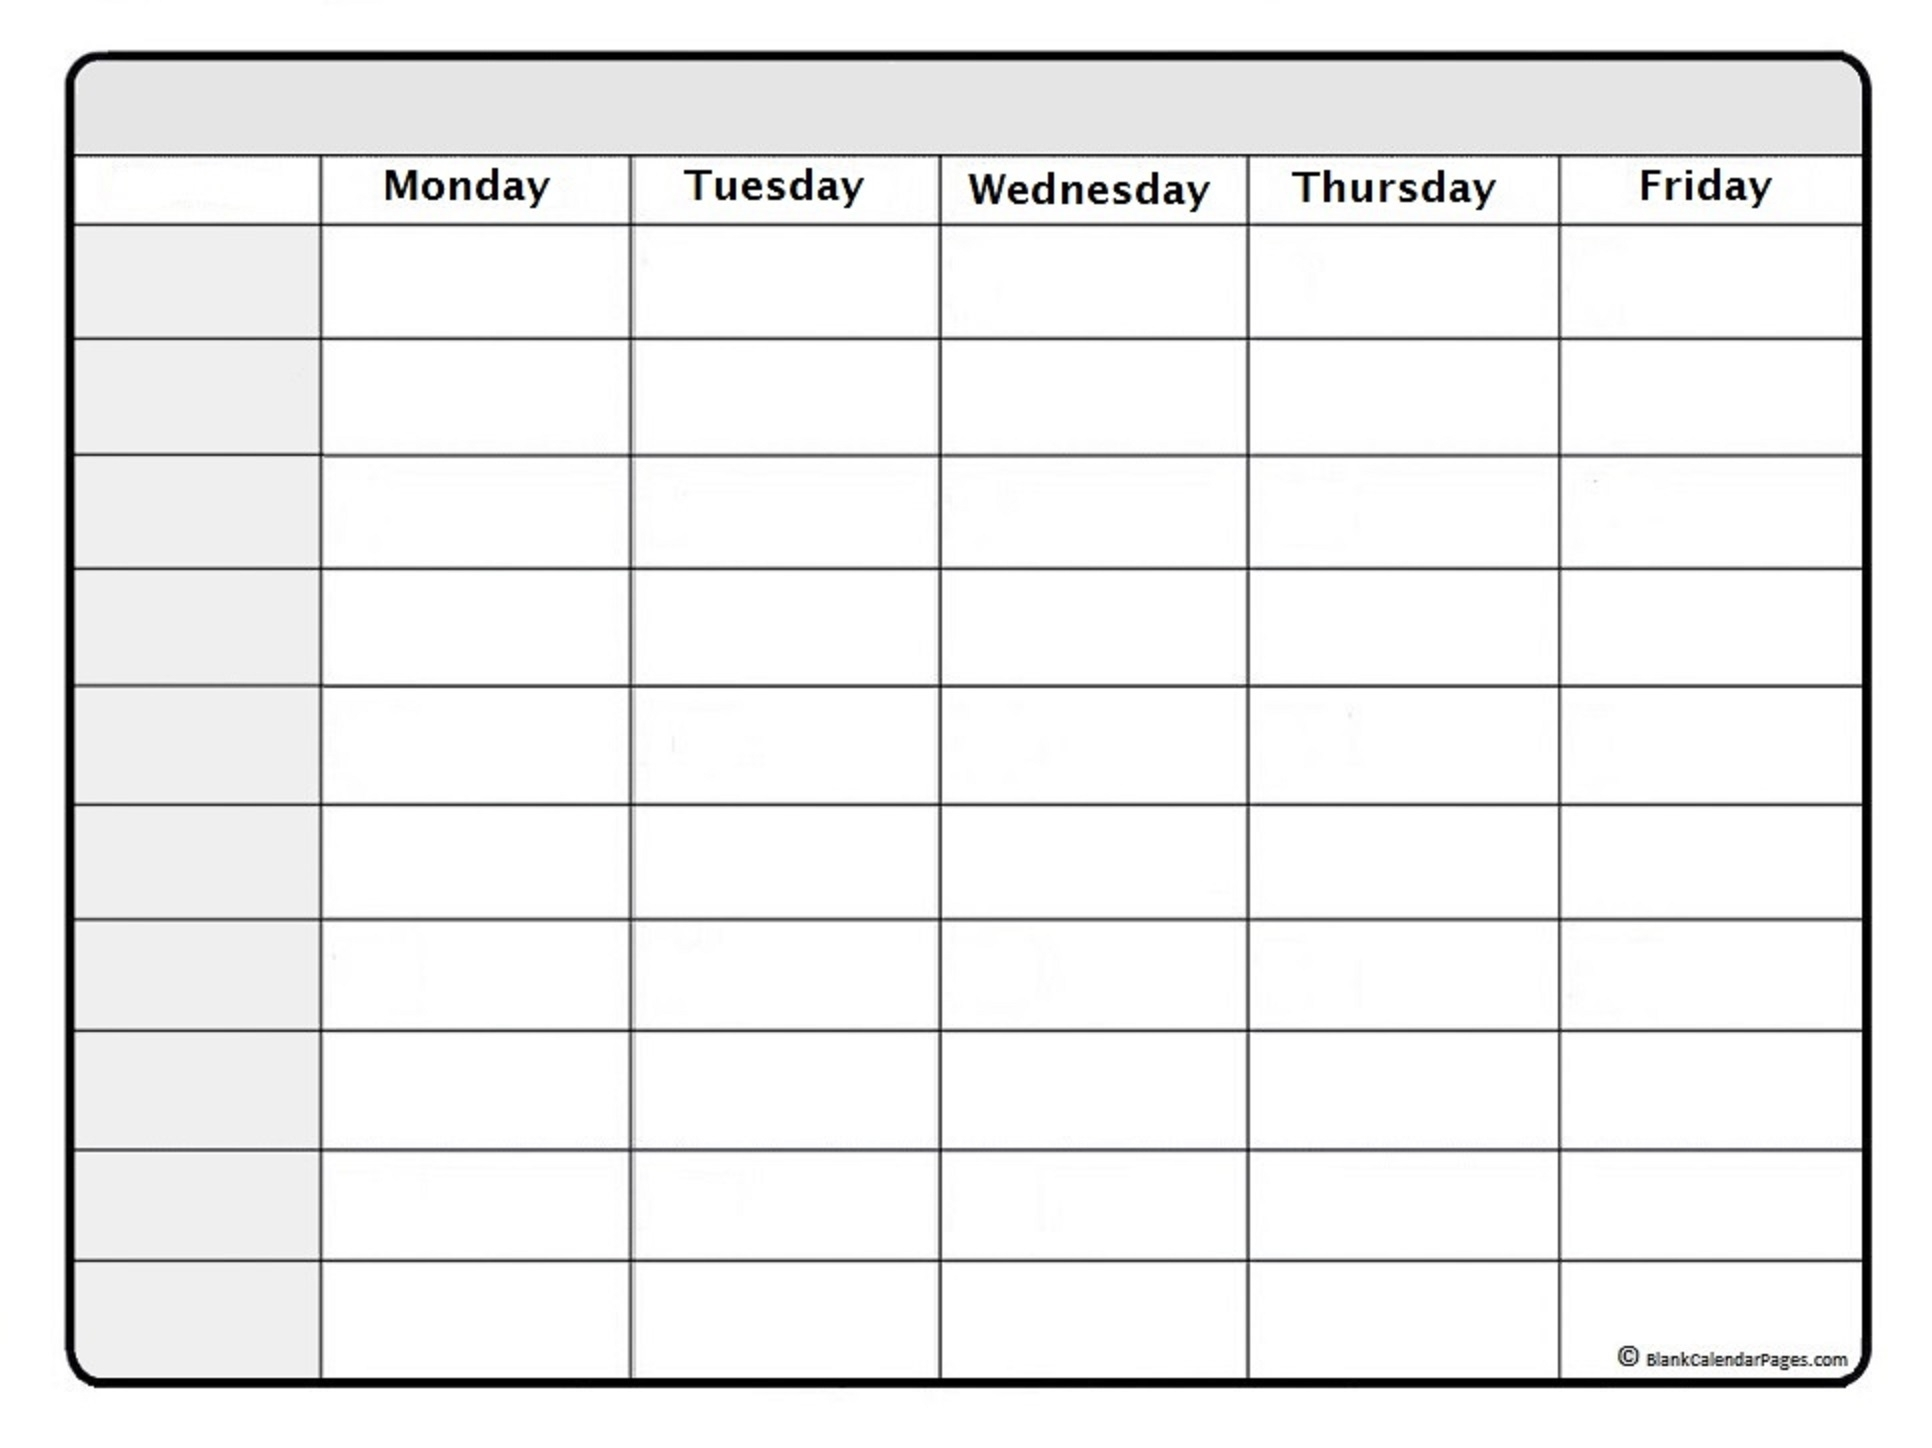 May 2019 Weekly Calendar | May 2019 Weekly Calendar Template within Blank Weekly Calendar To Fill In